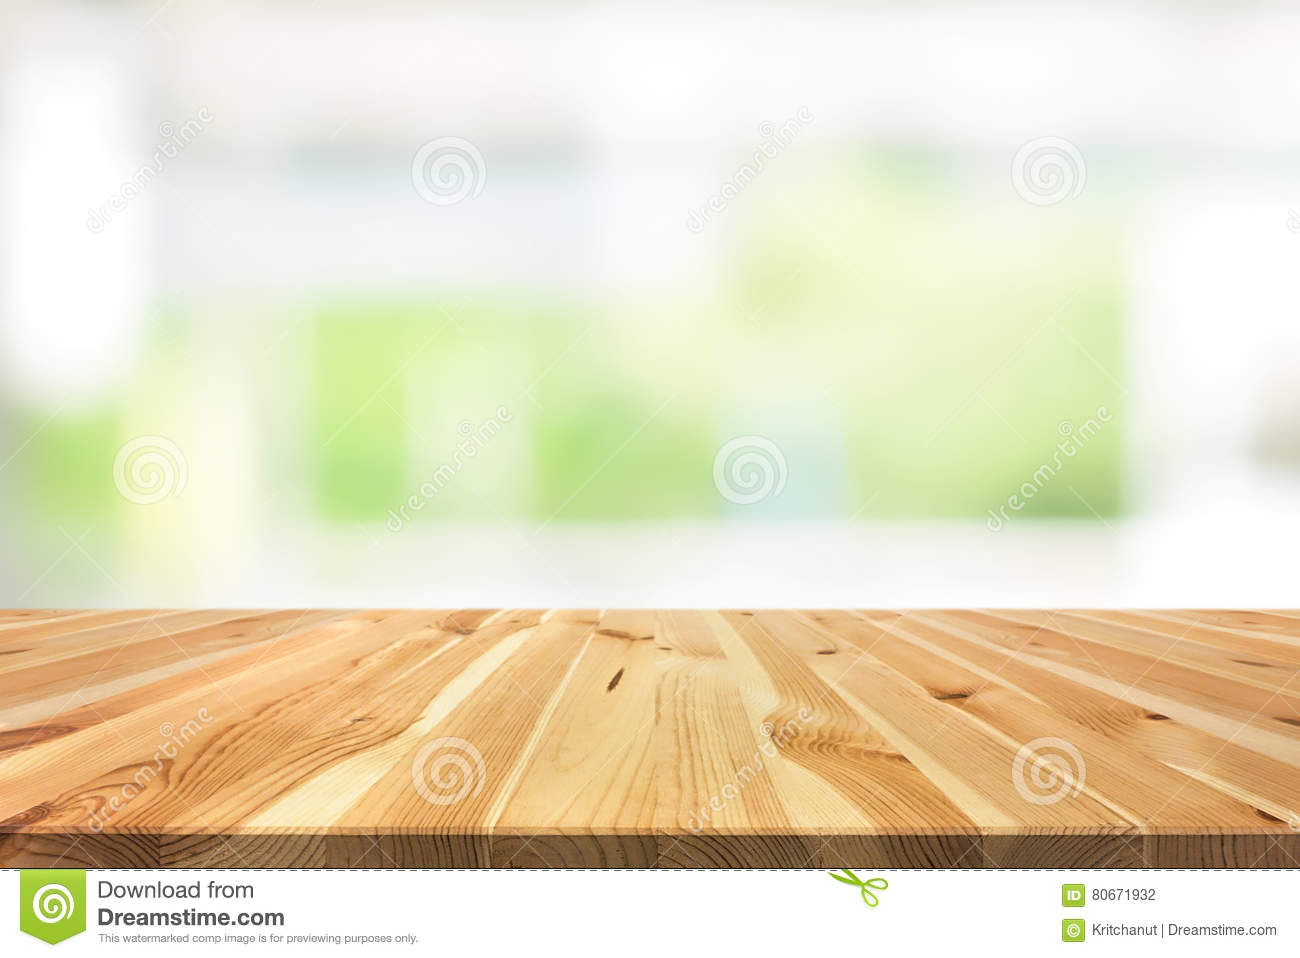 table top background blurred wood table top on blur white green background from kitchen windo table top on blur white green background from kitchen windo